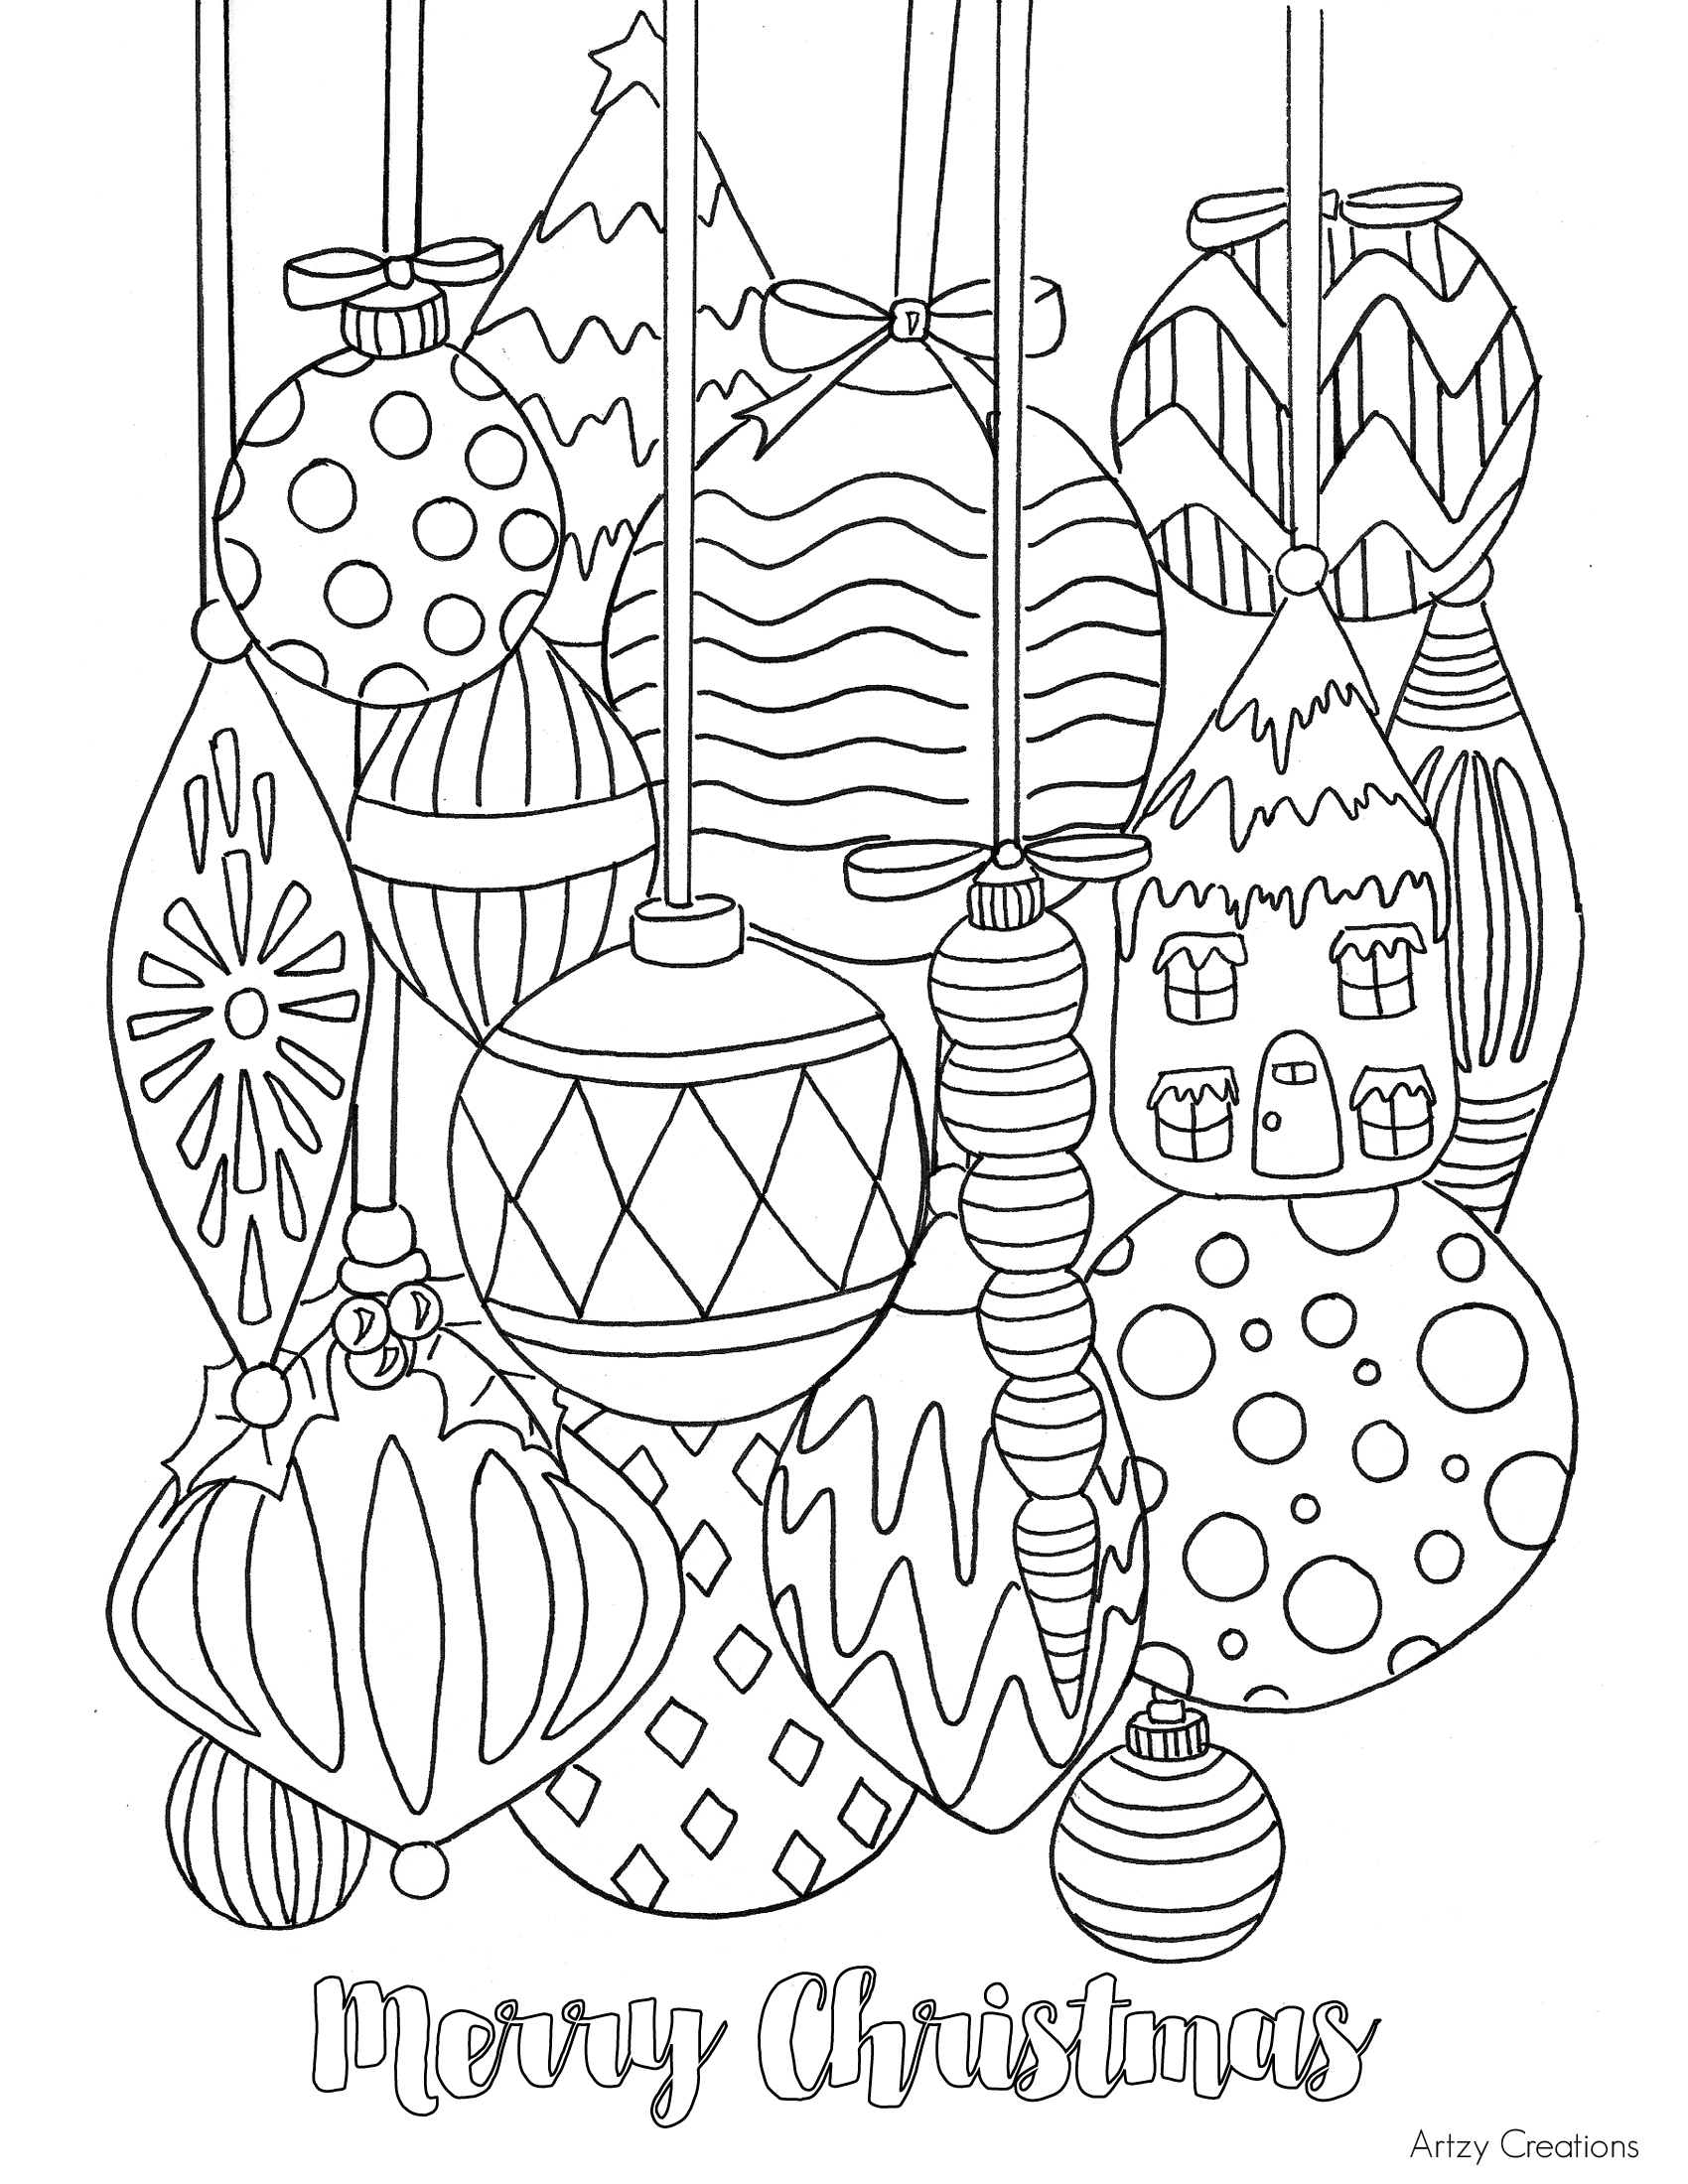 Free Christmas Ornament Coloring Page Artzycreations Com Coloring Pages For Ornaments